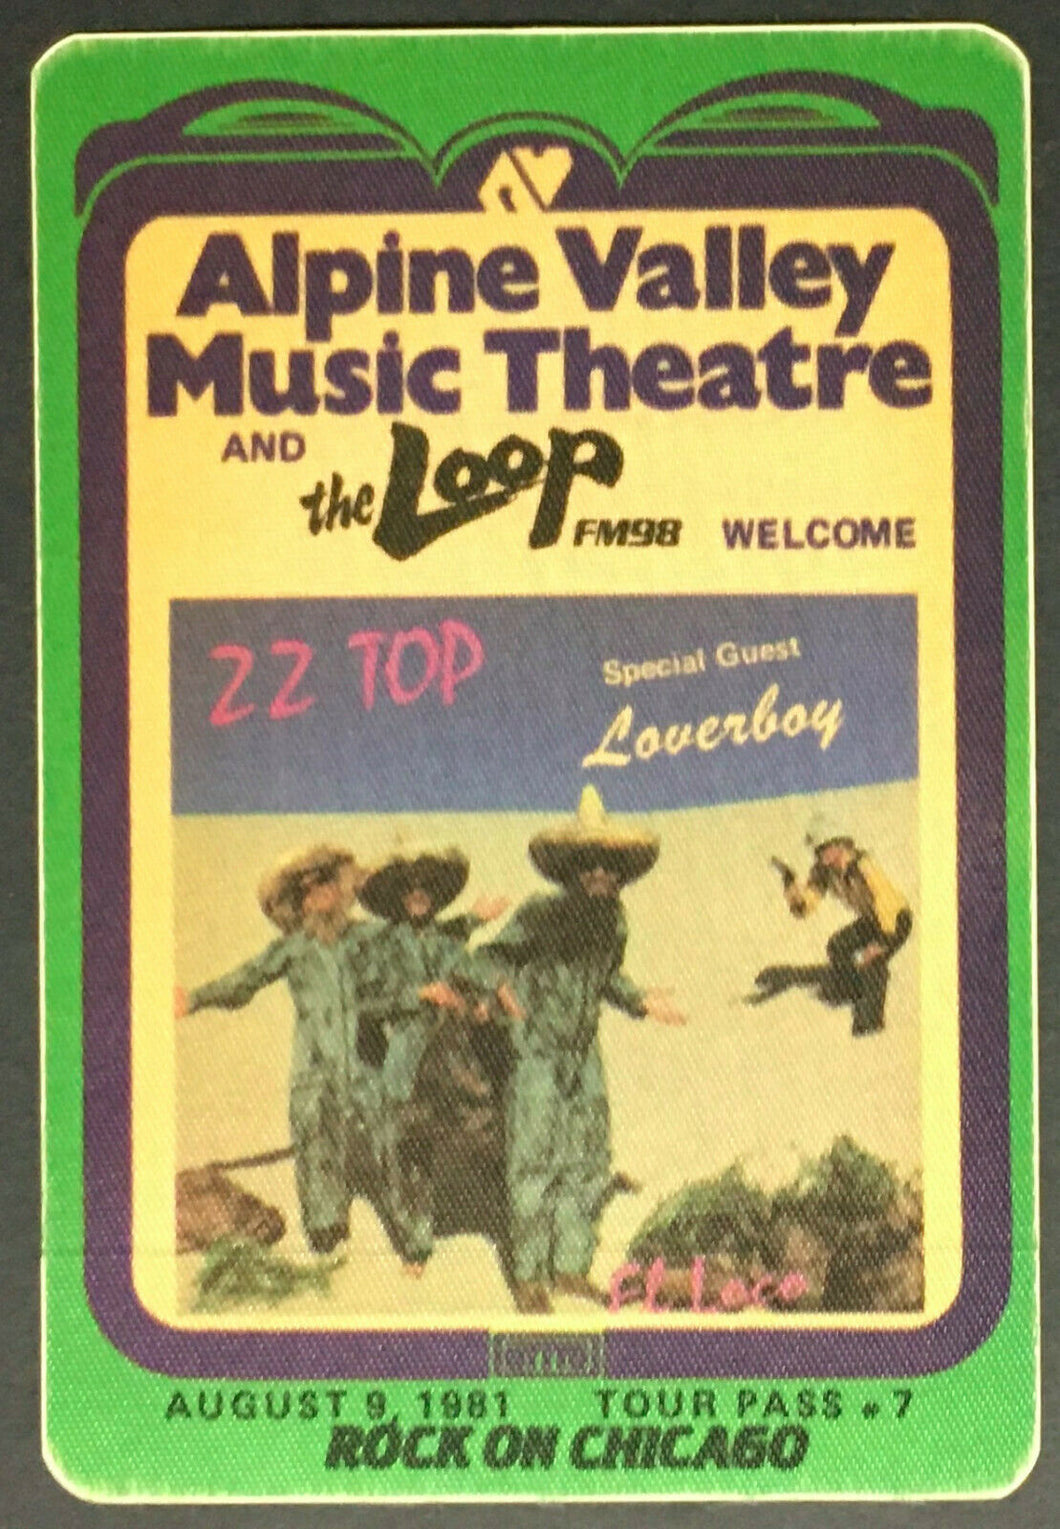 1981 ZZ Top & Loverboy Alpine Valley Music Theatre Concert Promo Decal Satin